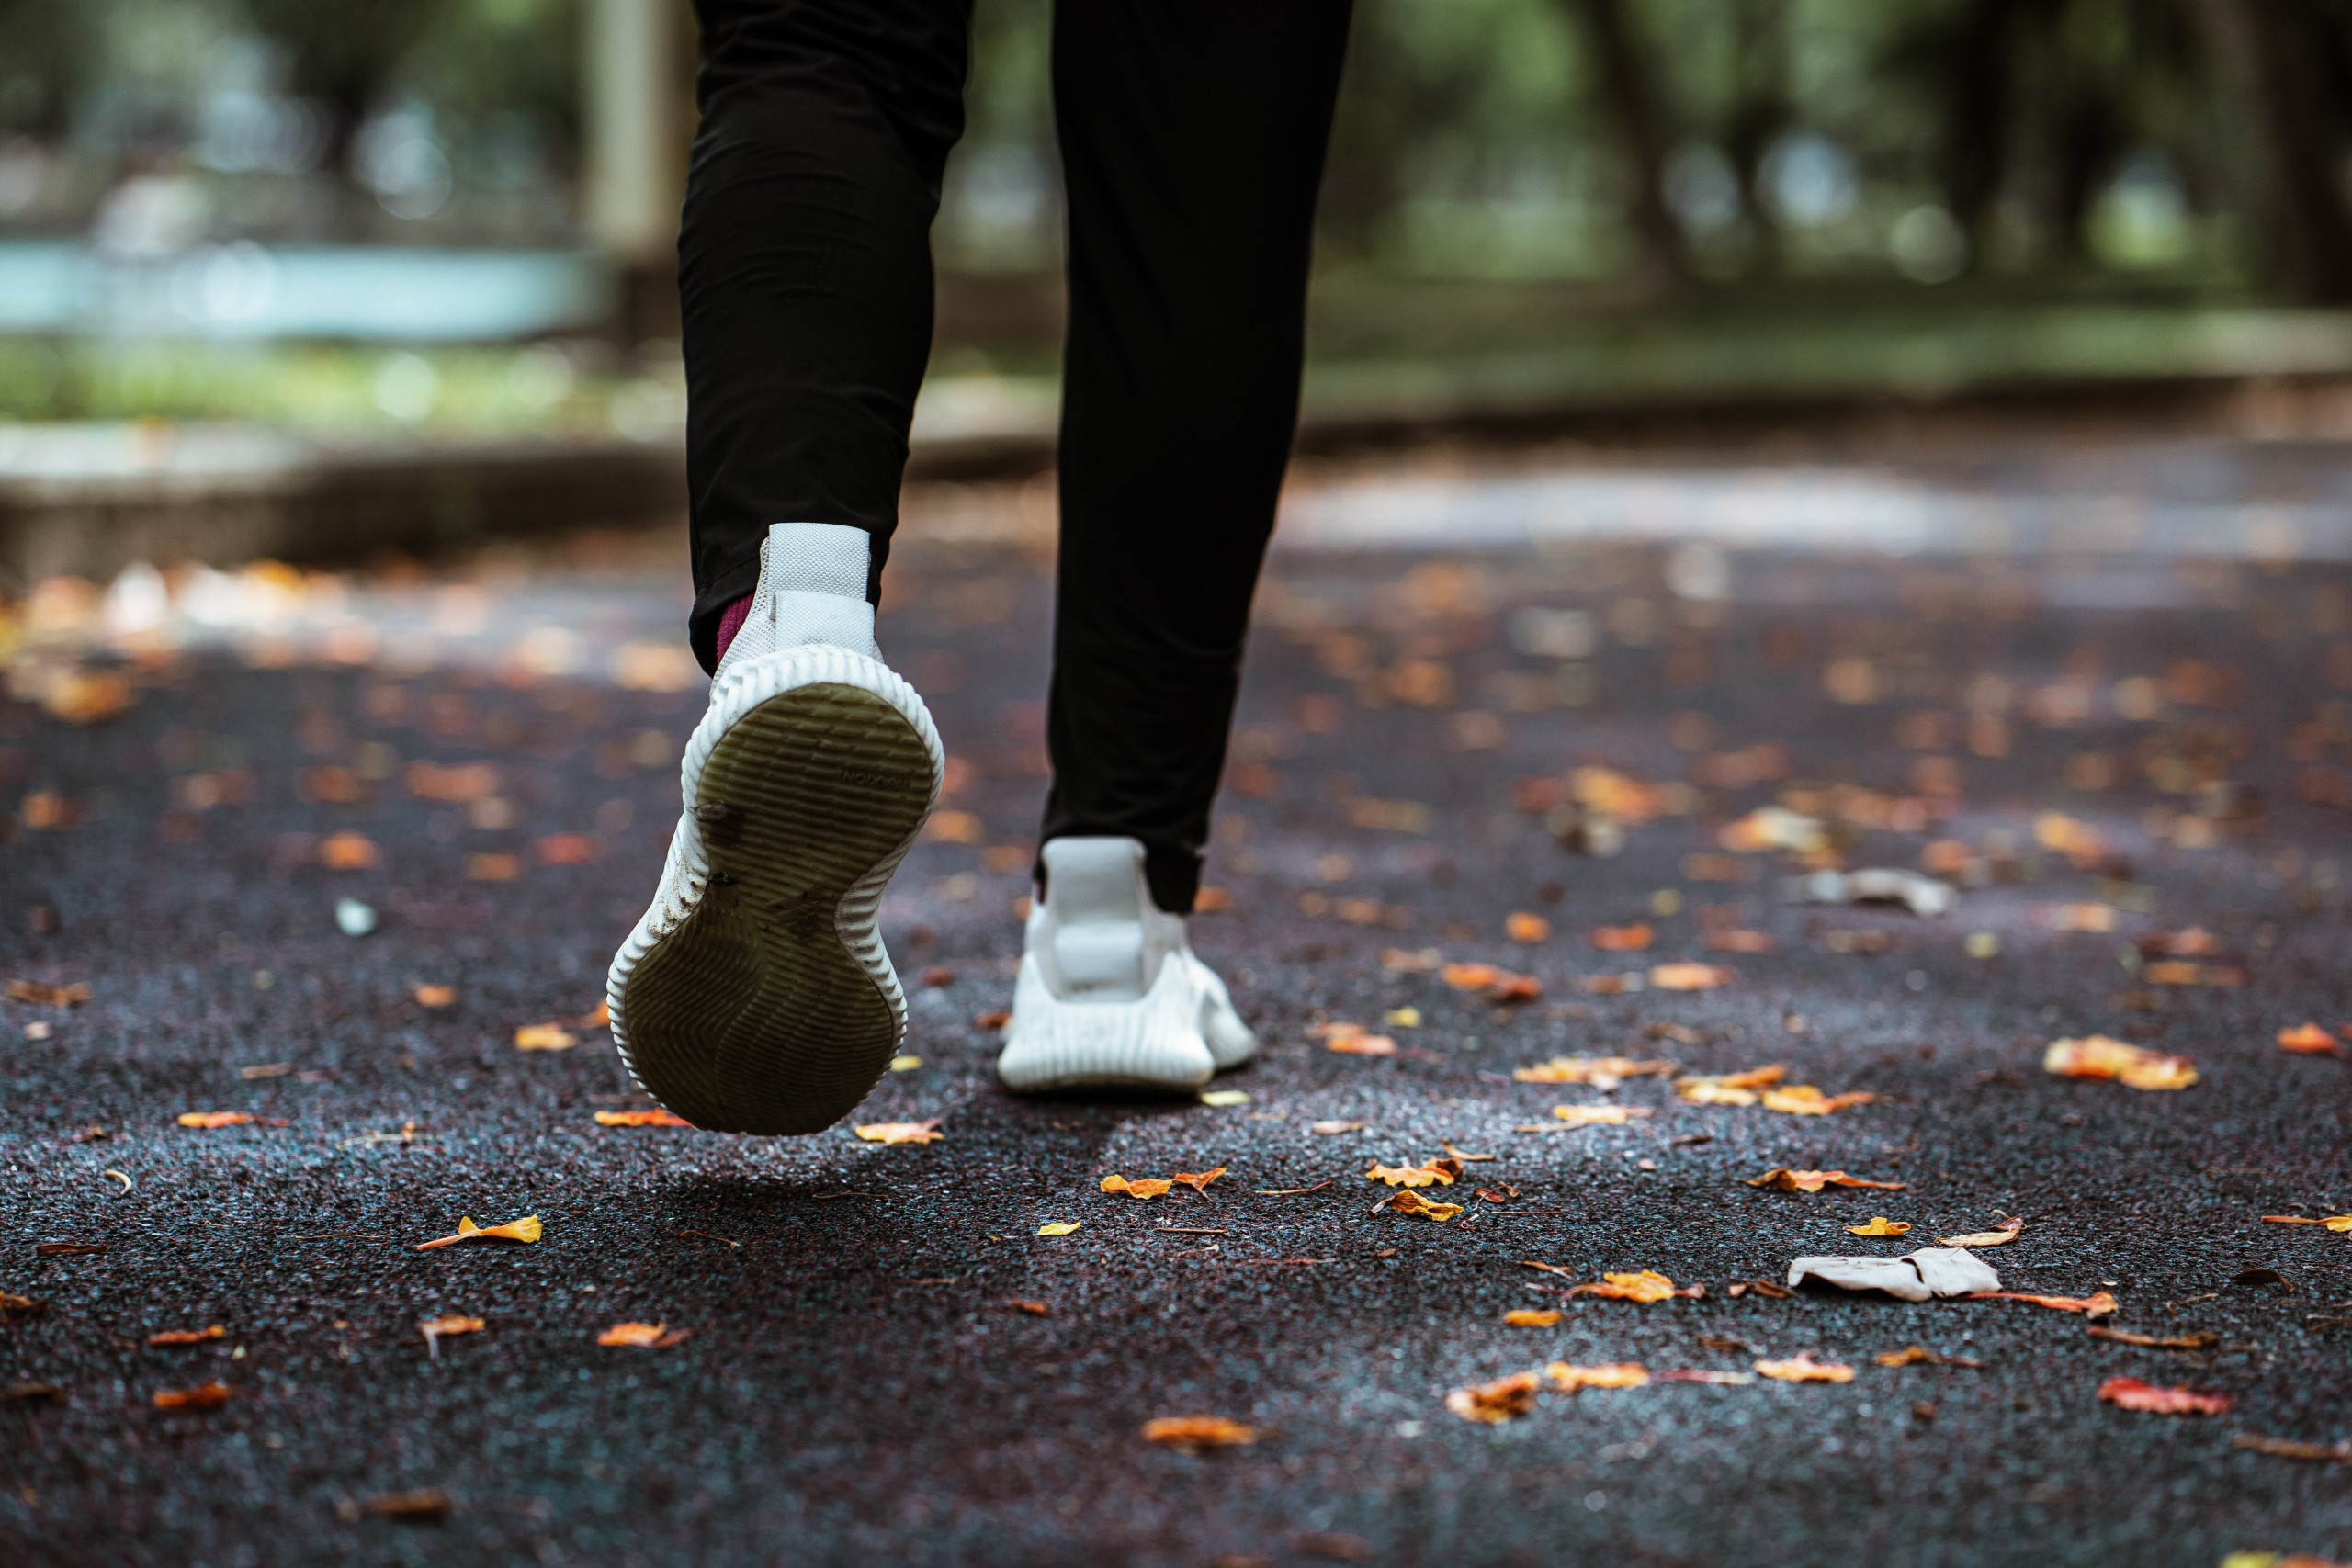 Person running outside on pavement. Fall leaves on ground. View of black pants and white tennis shoes.